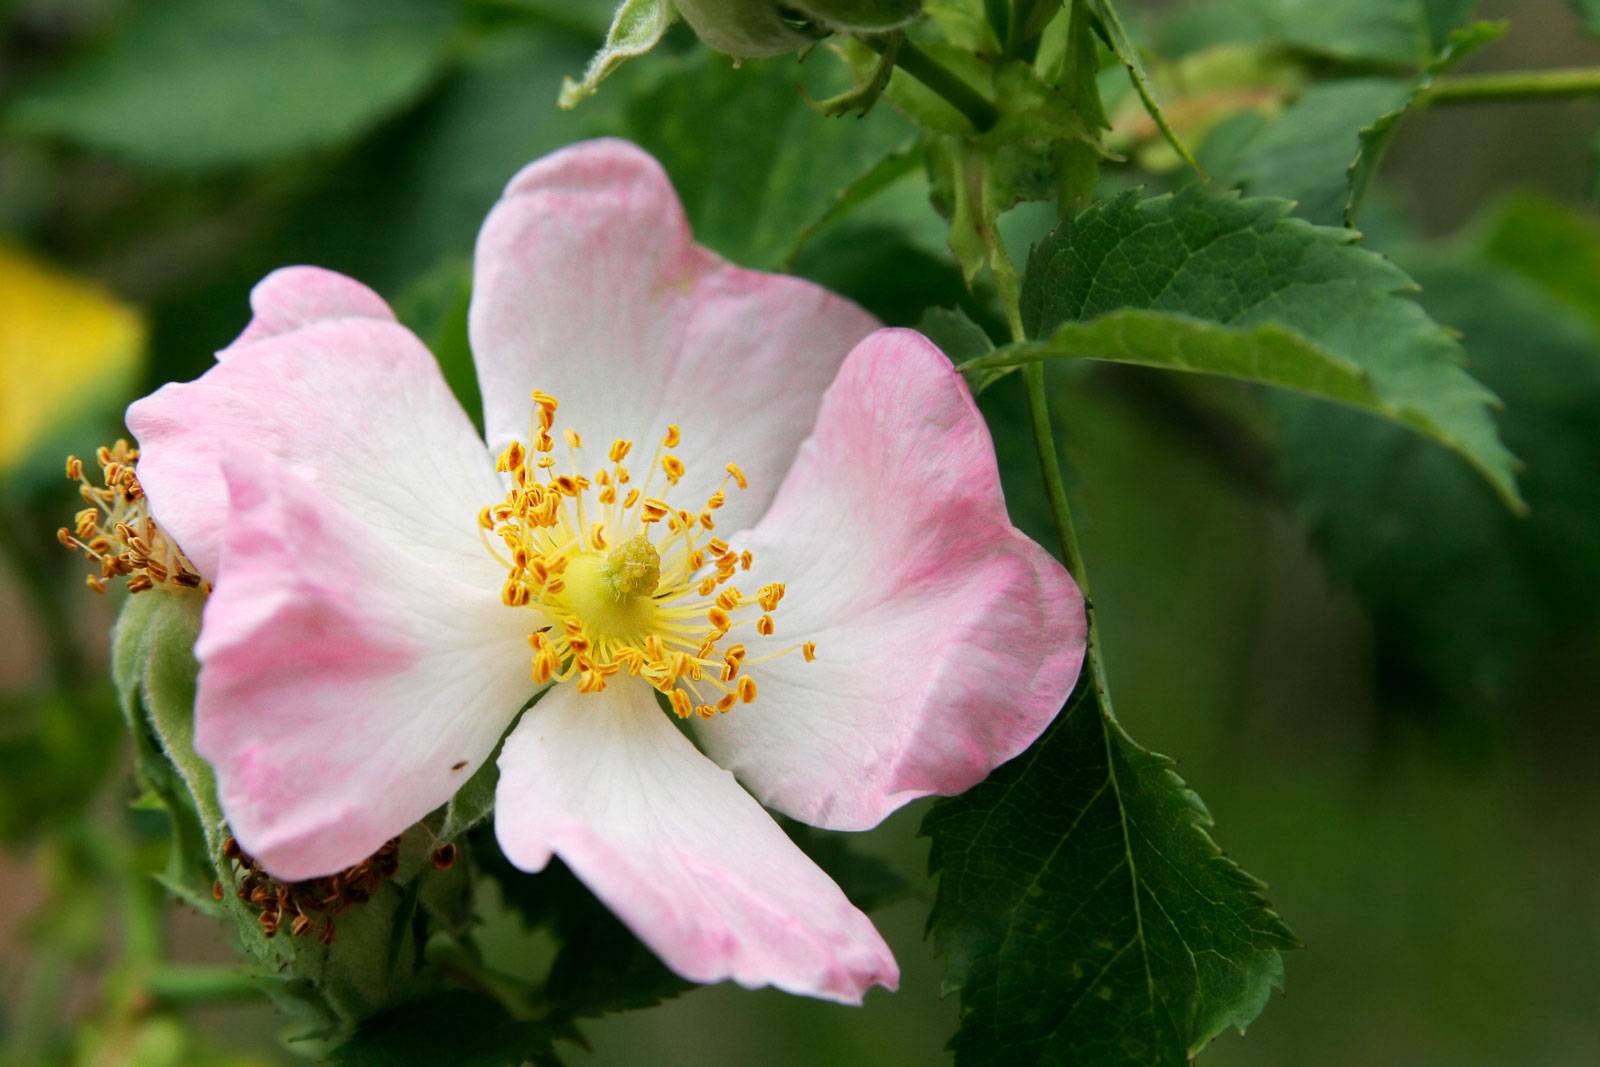 White and Pink Dog Rose Flower